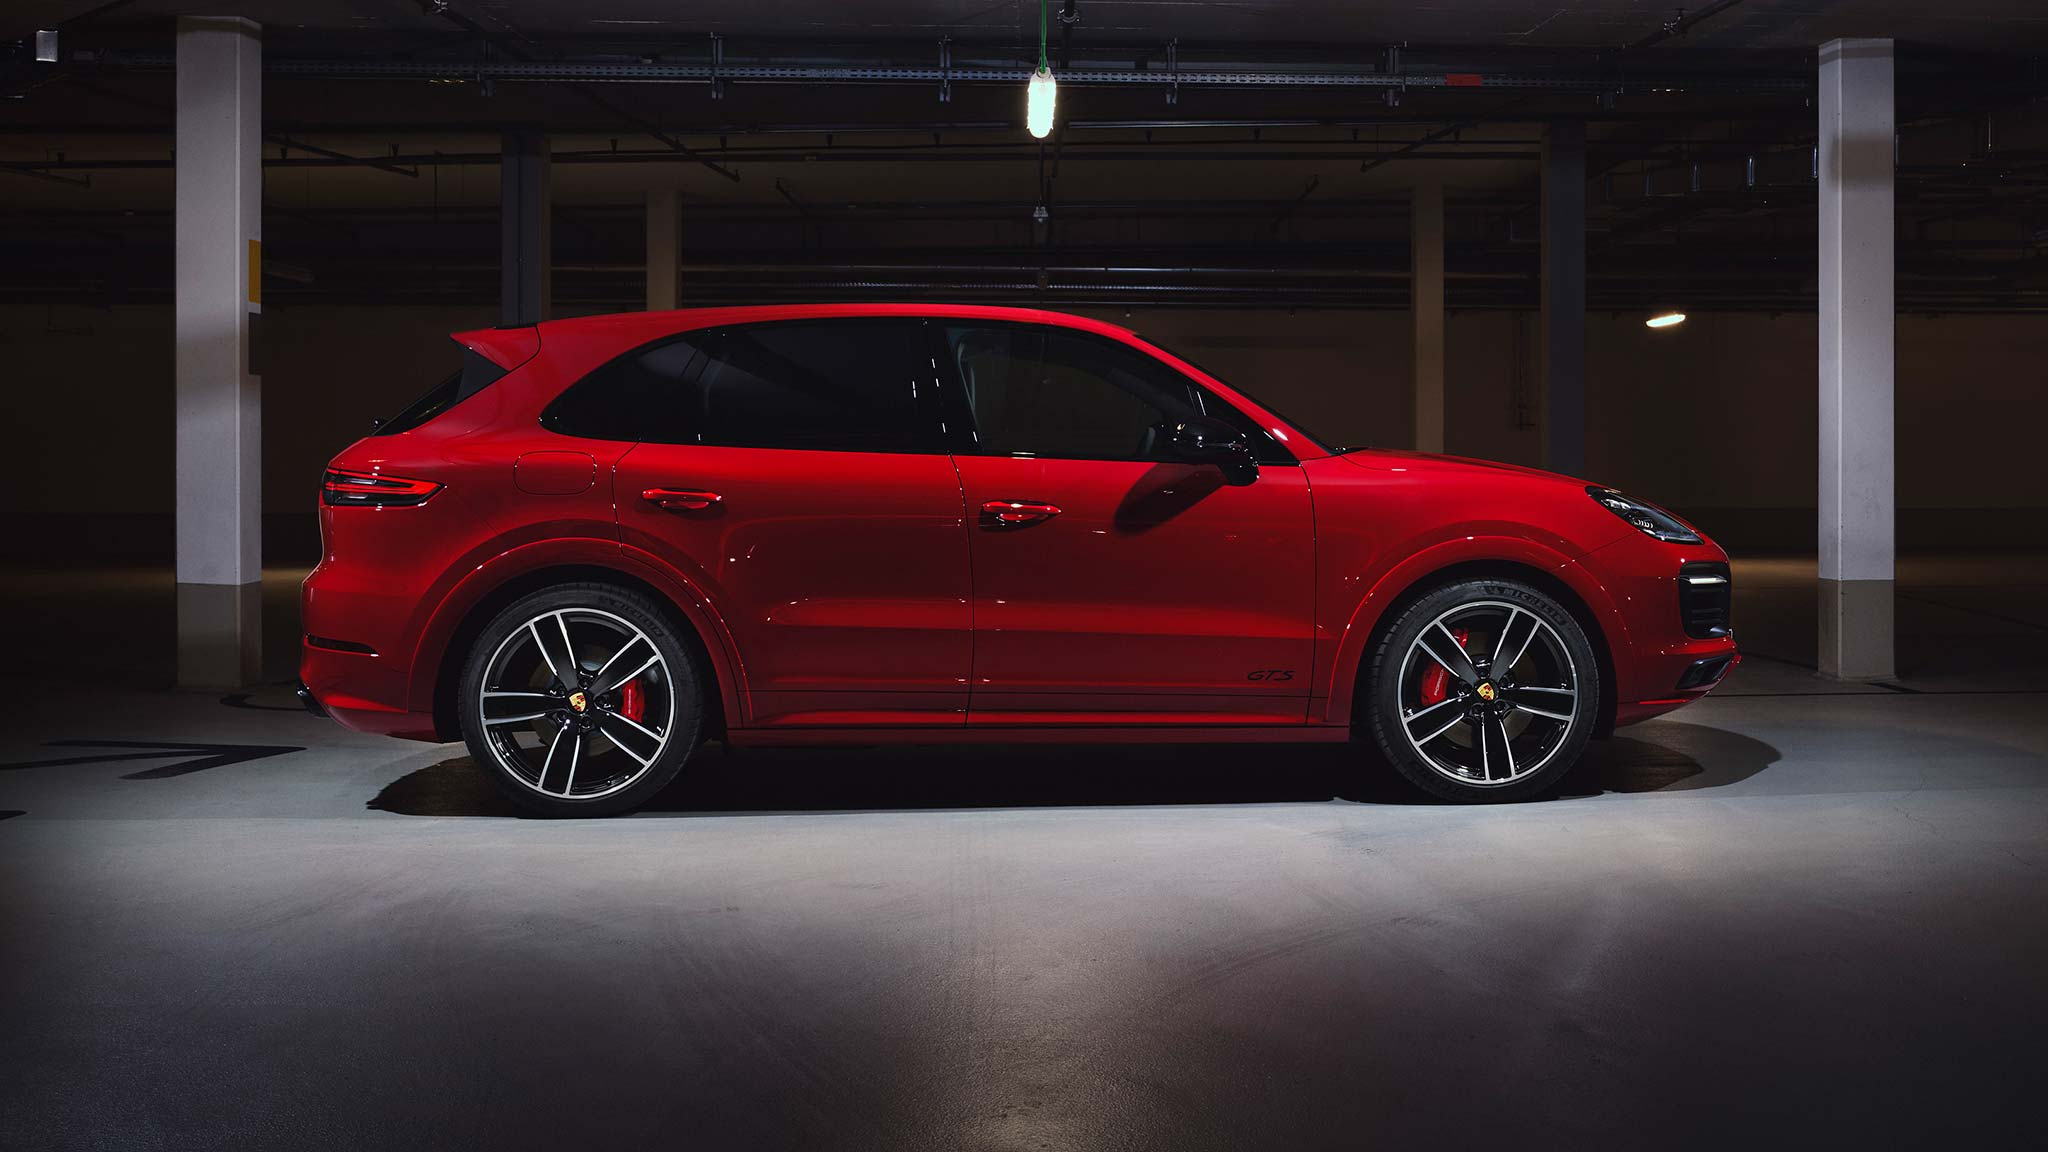 New 2021 Porsche Cayenne Gts Offers 453 Hp Twin Turbo V 8 Costs 108 650